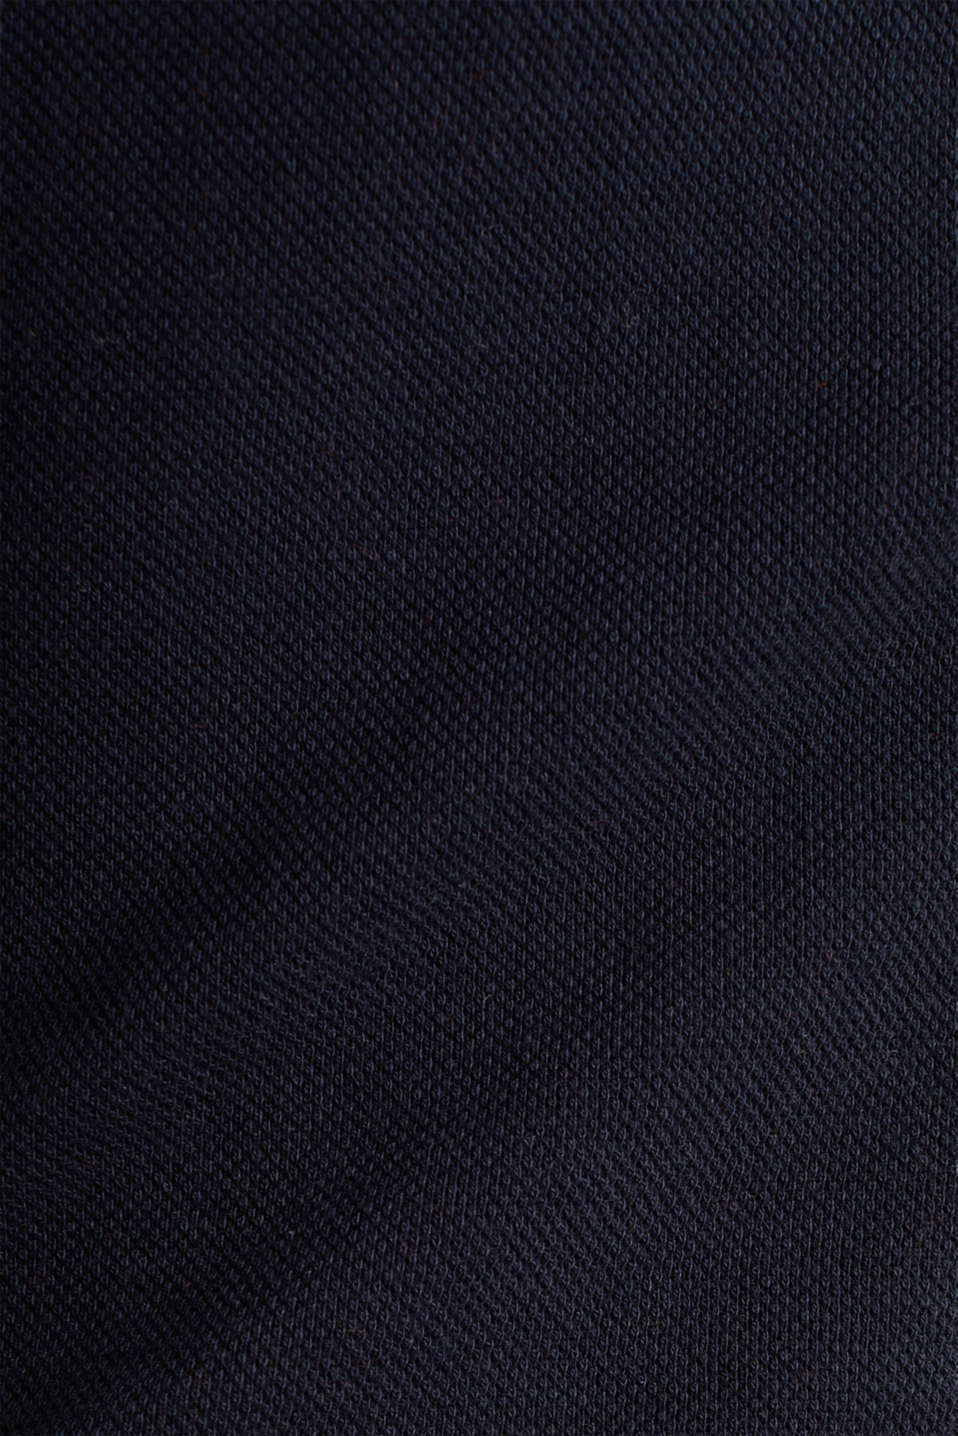 Stretch piqué dress with a flared skirt, NAVY, detail image number 4